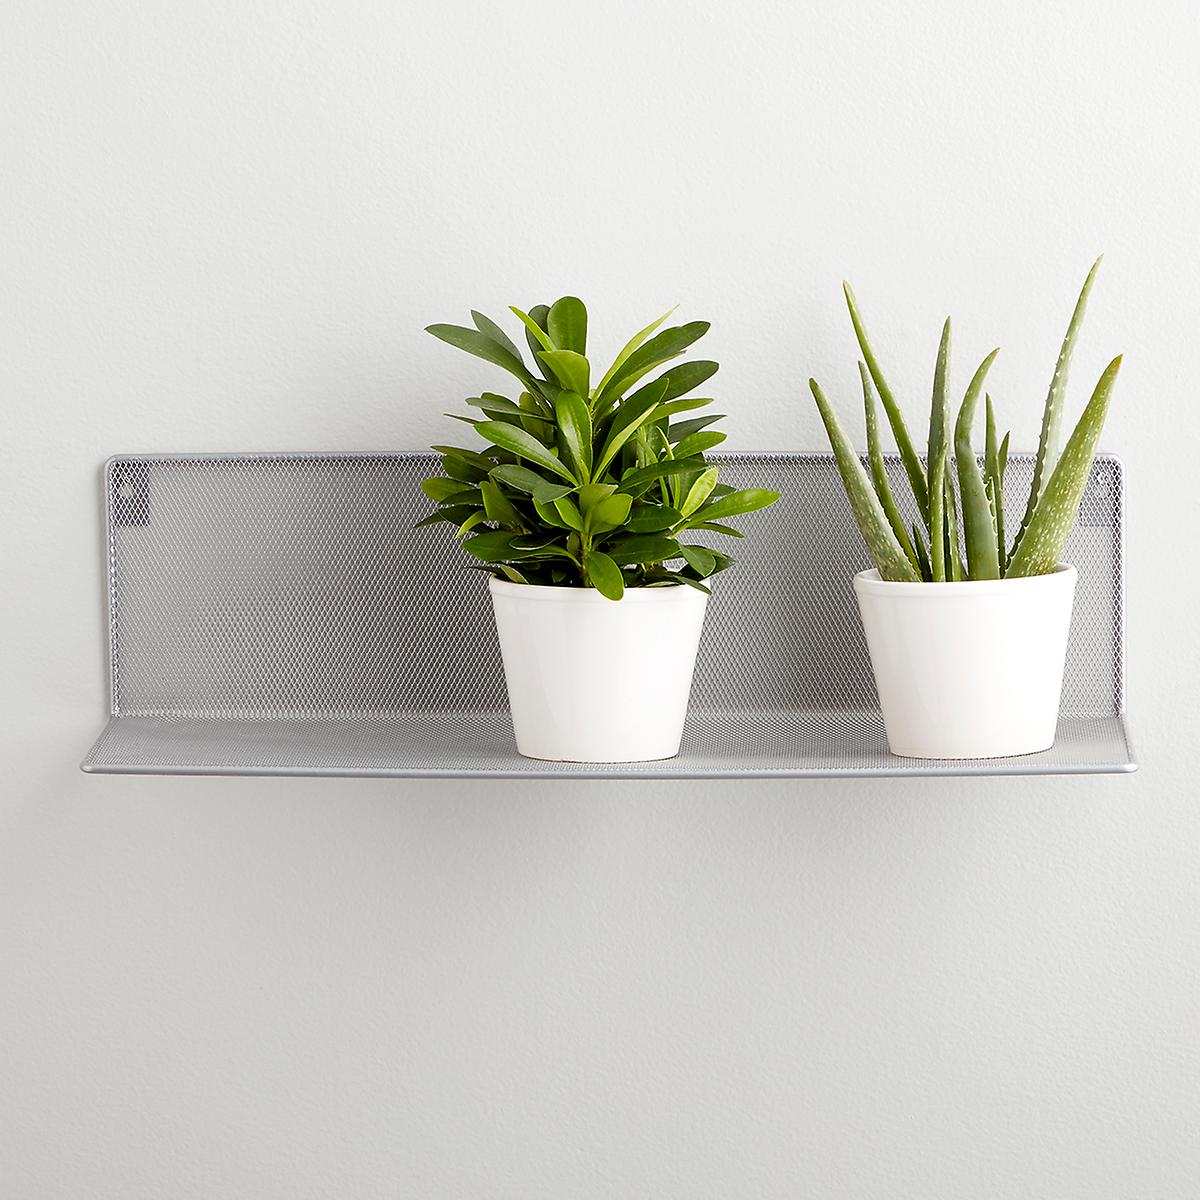 Silver Mesh Wall-Mounted Shelf